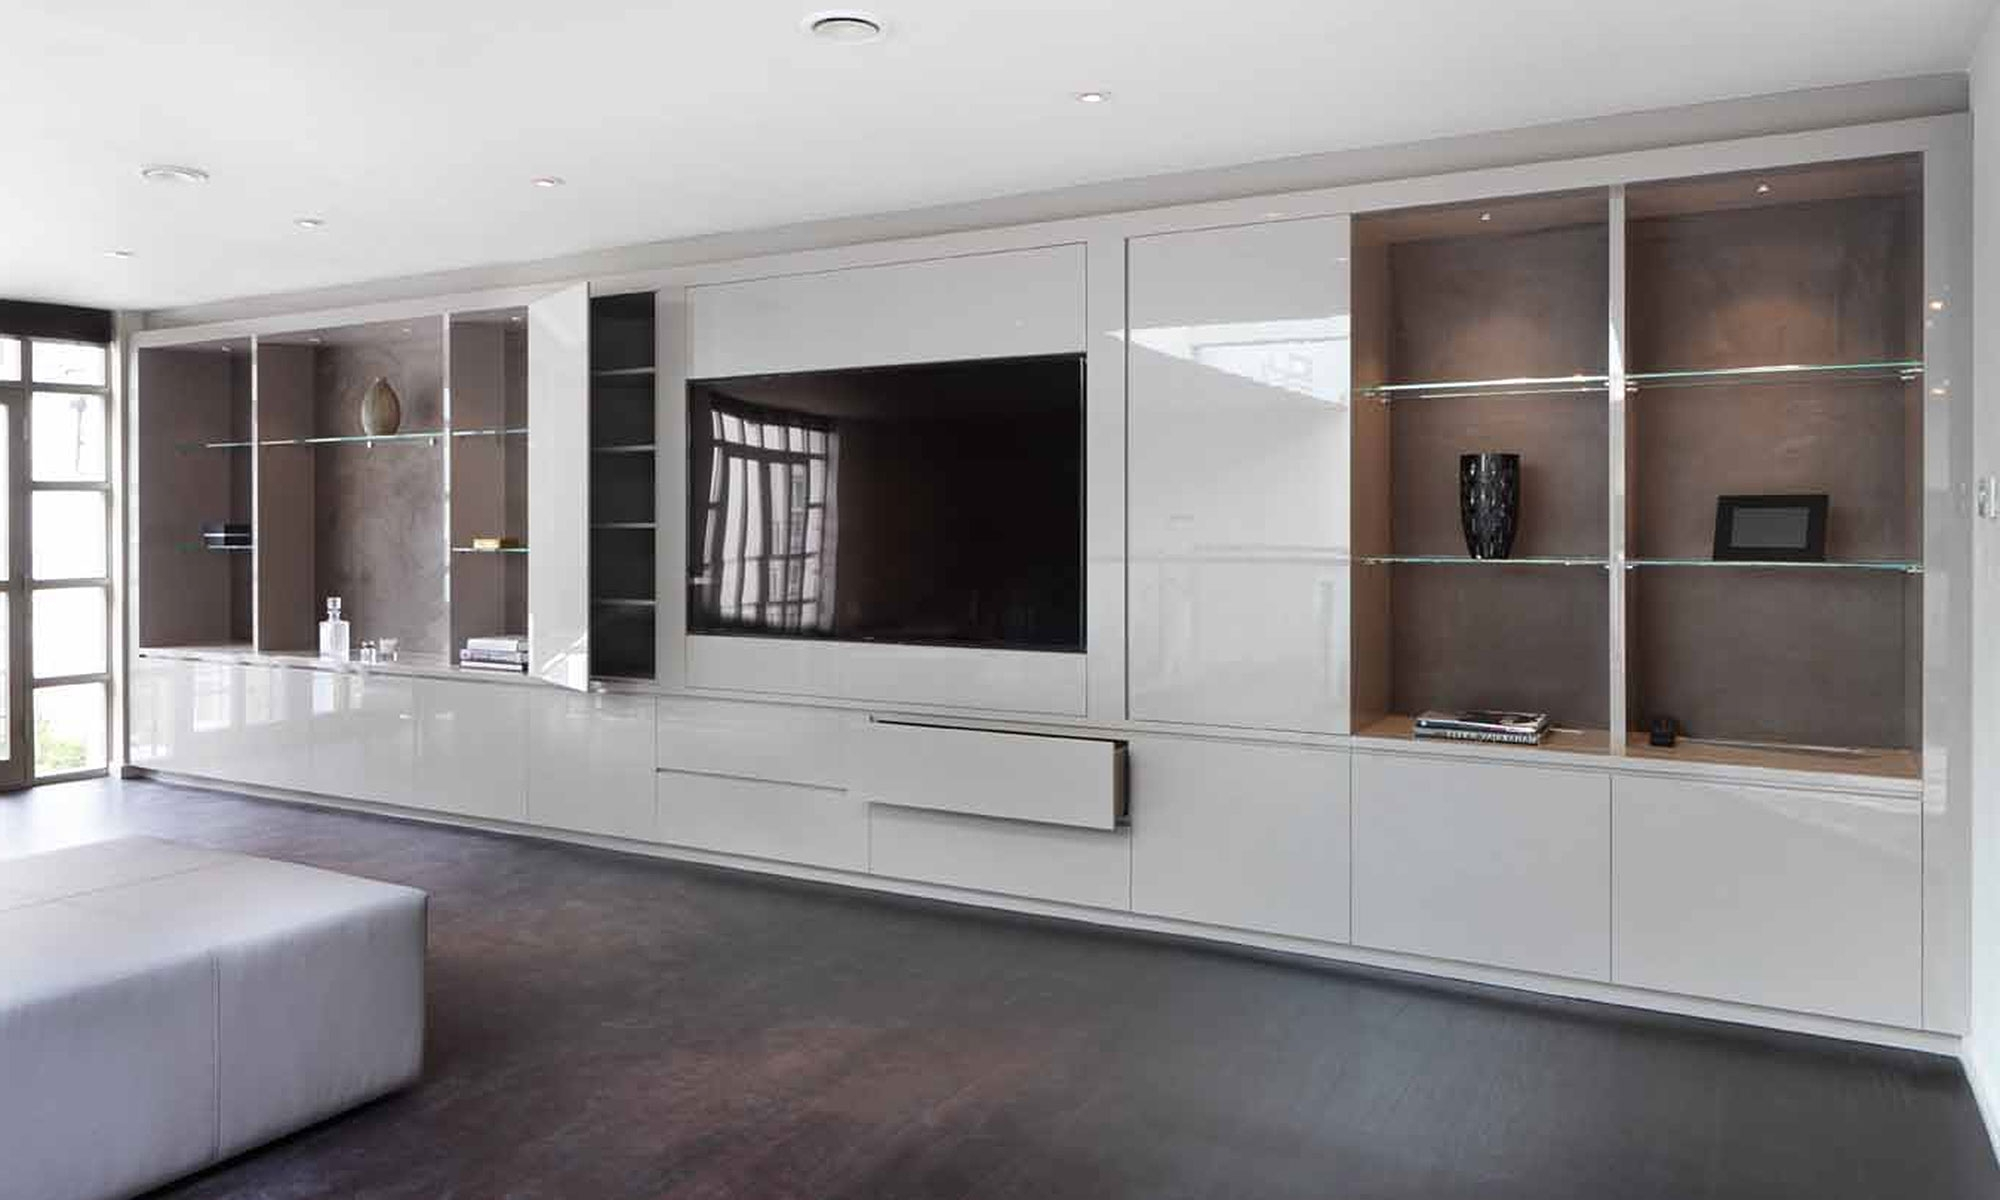 Widely Used Fitted Wall Units Living Room Regarding Fitted Wall Units Living Room – Ecoexperienciaselsalvador (View 5 of 15)